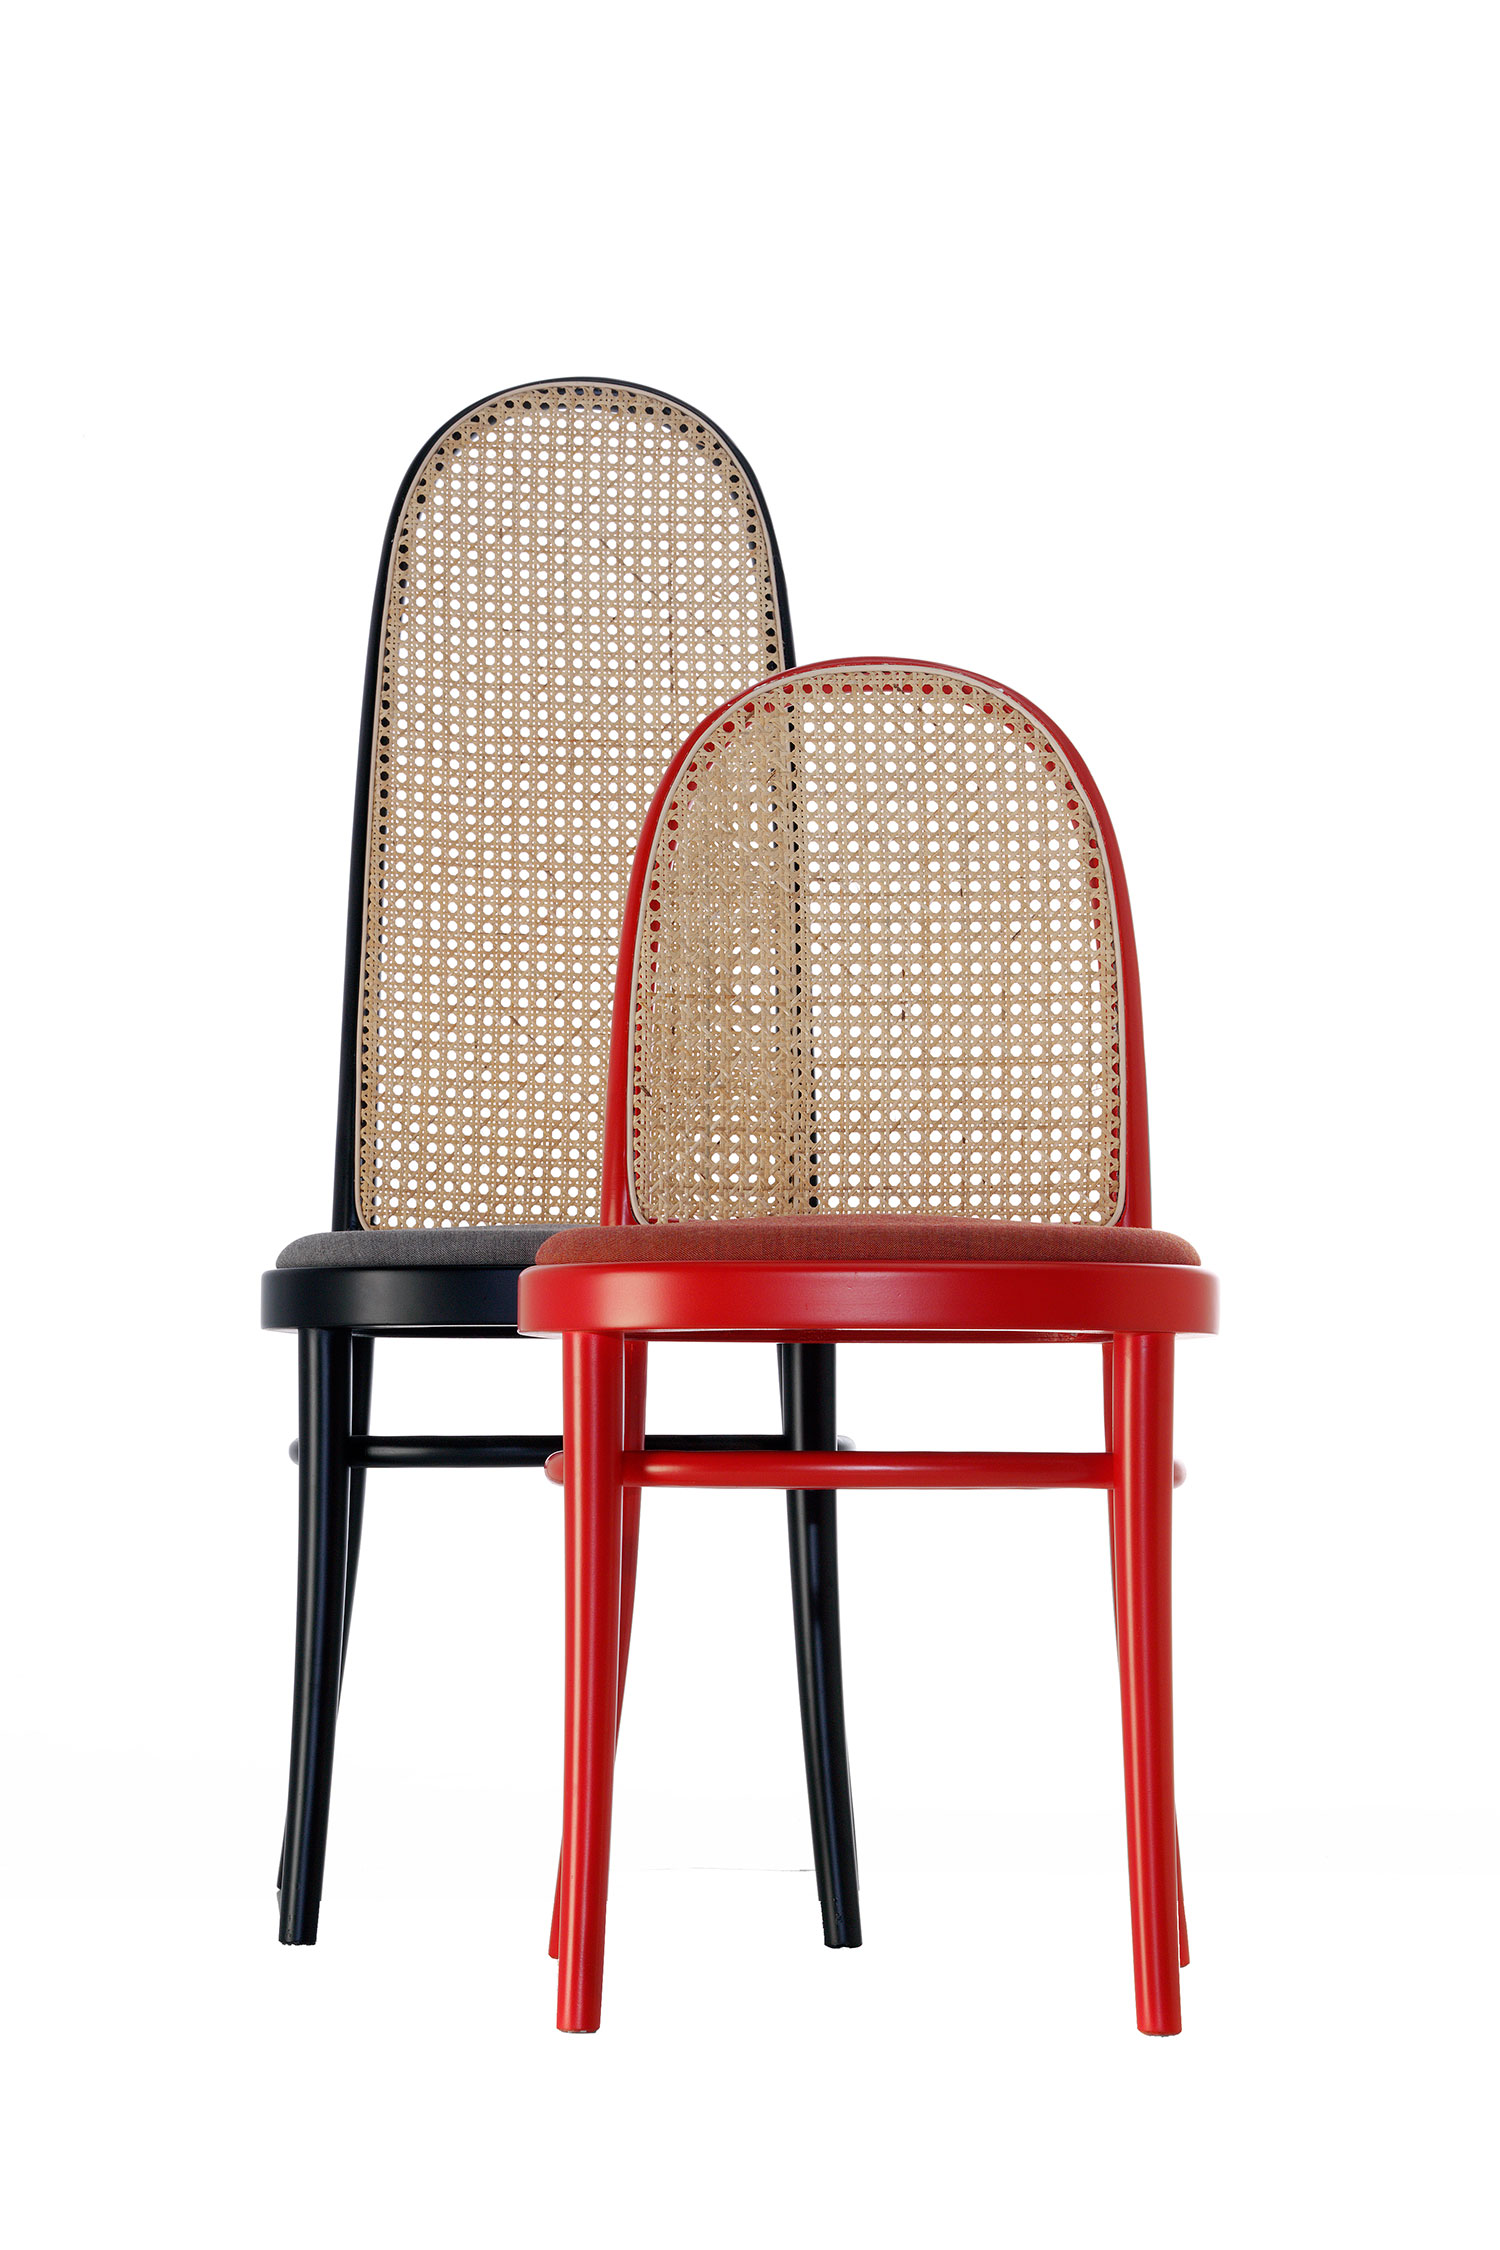 Gebruder Thonet MORRIS chairs by GamFratesi u2013 Best of Salone Del Mobile 2015 | Yellowtrace  sc 1 st  Yellowtrace & Gebruder Thonet MORRIS chairs by GamFratesi - Best of Salone Del ...